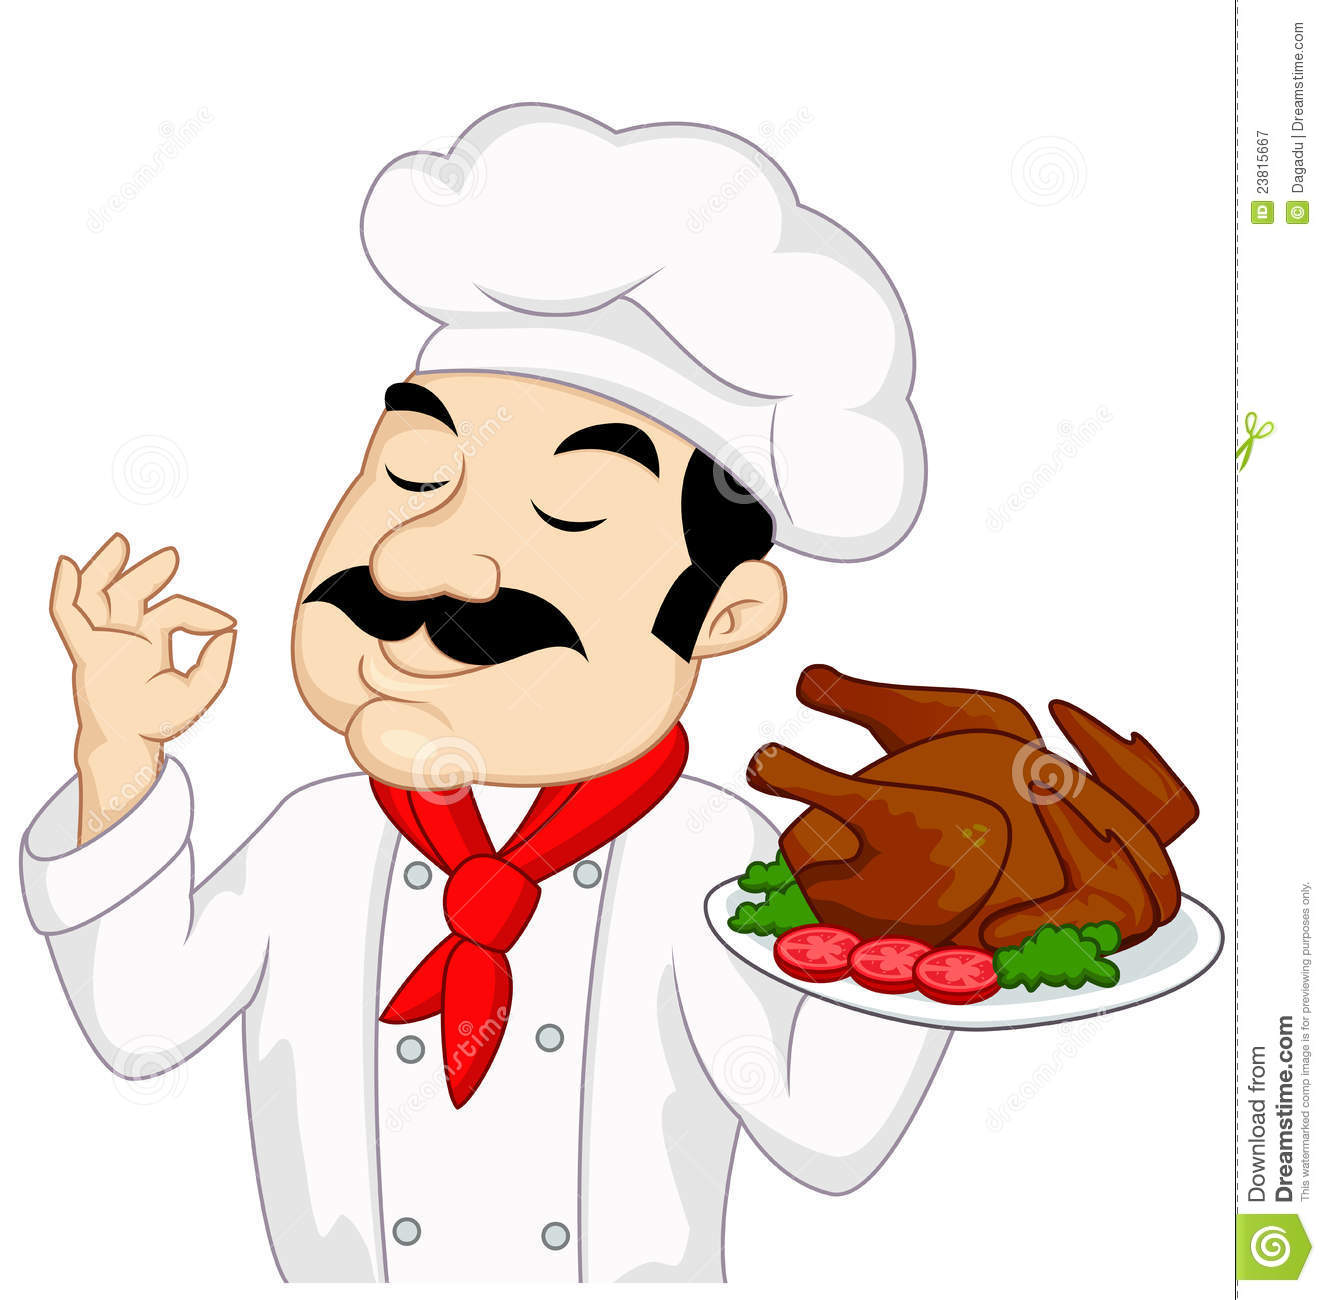 Chef clipart 20 free Cliparts | Download images on ...